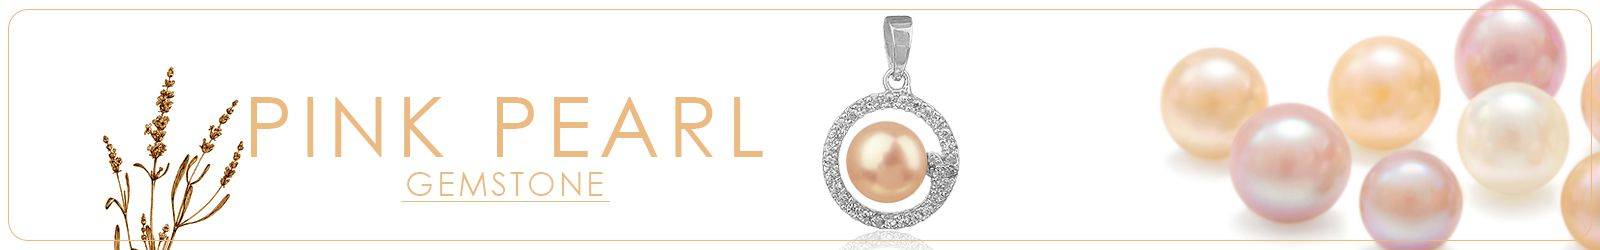 Pink Pearl Silver Jewelry Manufacturer, Supplier in Jaipur